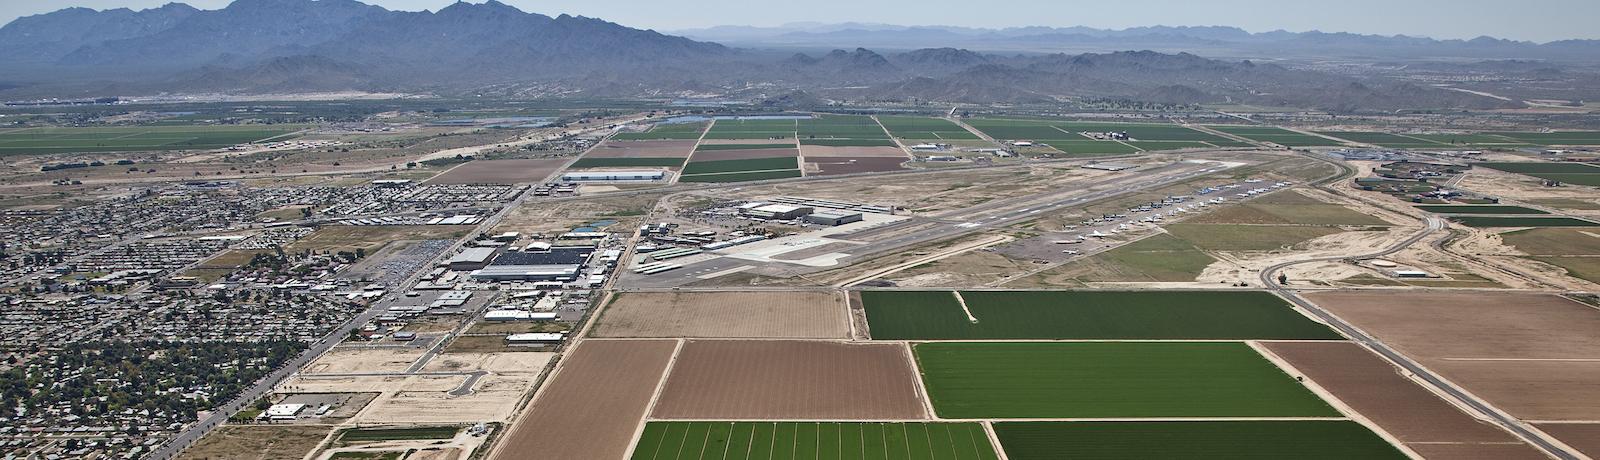 Aerial view of Western Avenue Plume site area near Phoenix Goodyear Airport